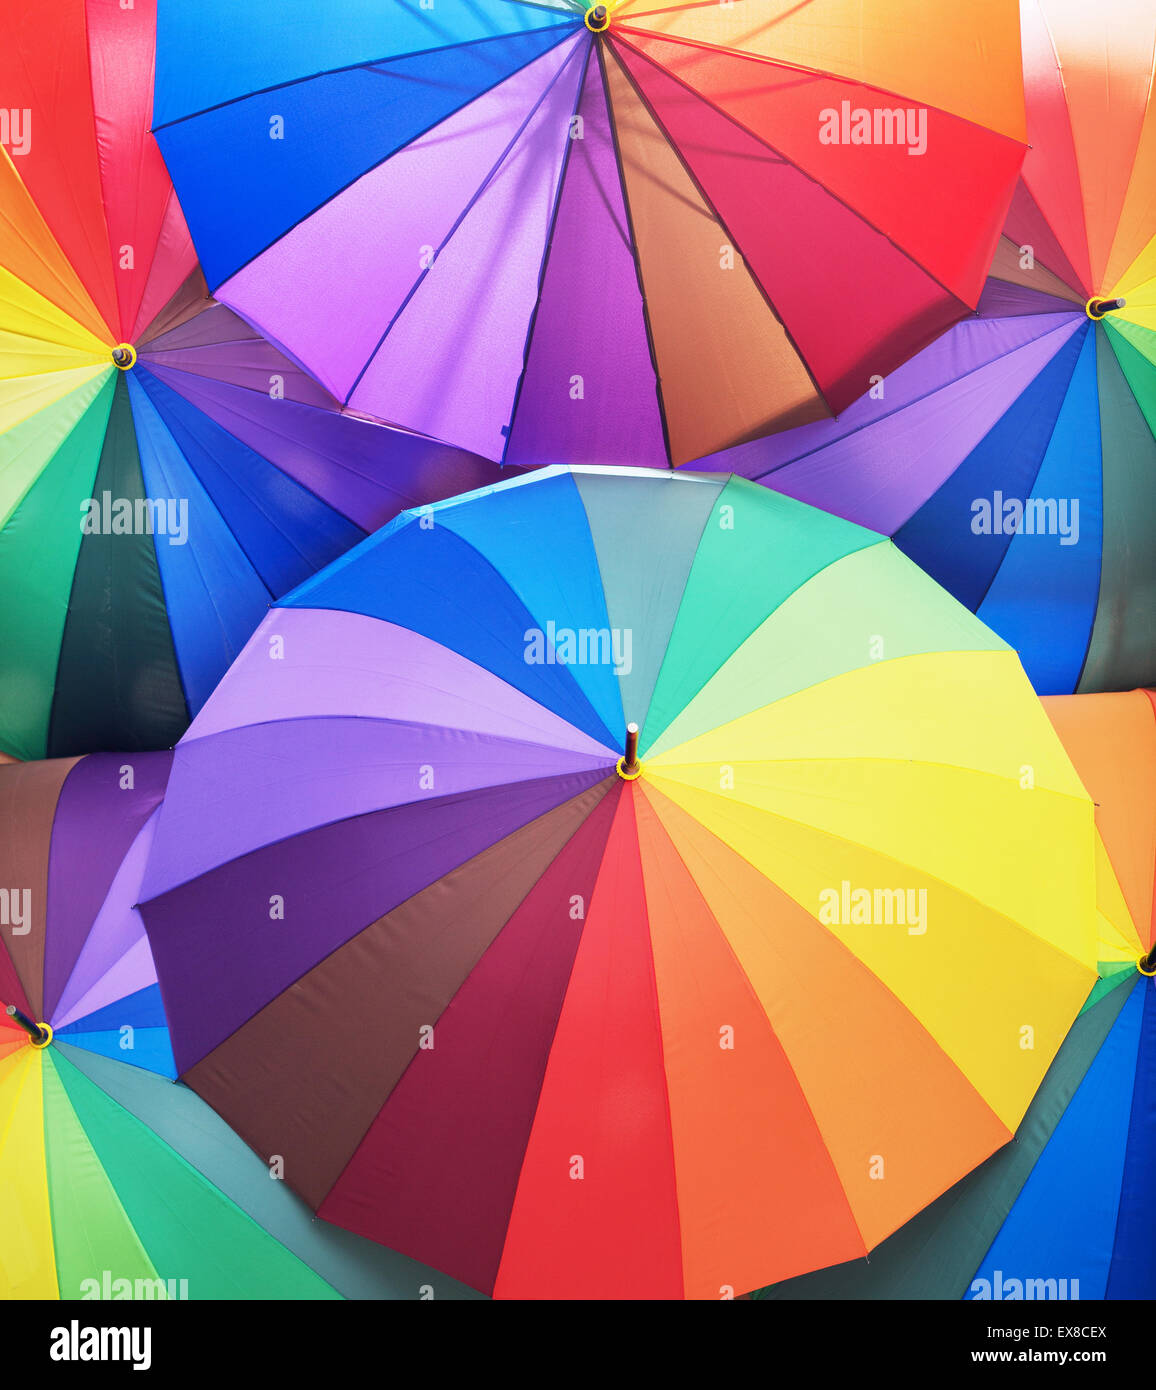 Bunch of colorful and vivid umbrellas - Stock Image